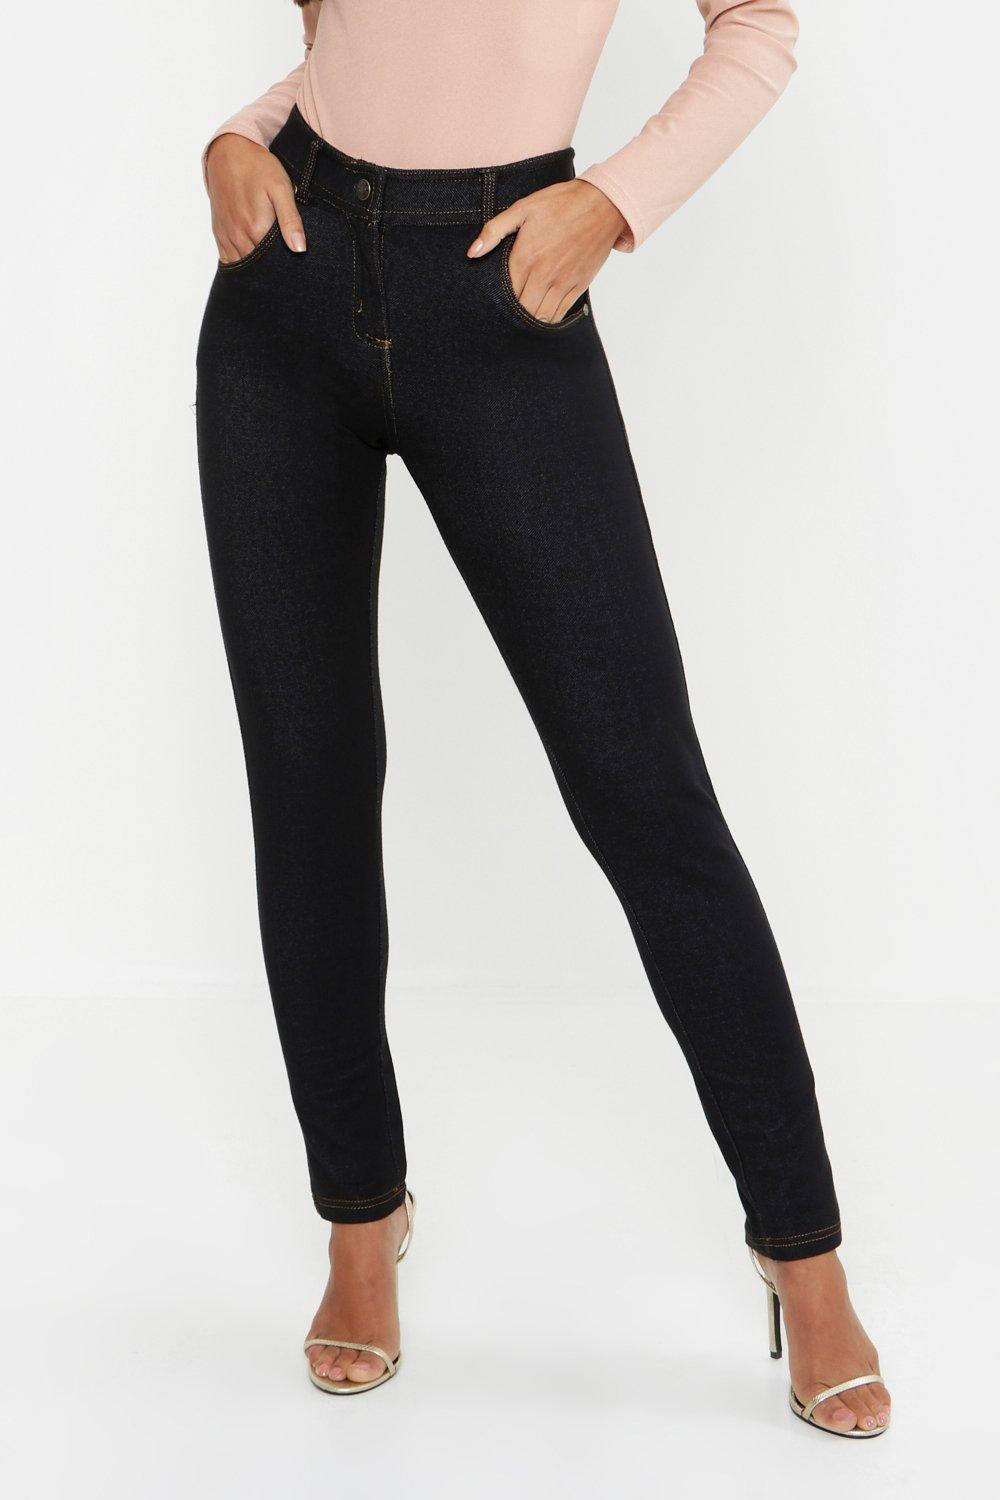 7dc87160e0e Womens Black Petite One Button High Rise Skinny Jegging. Hover to zoom